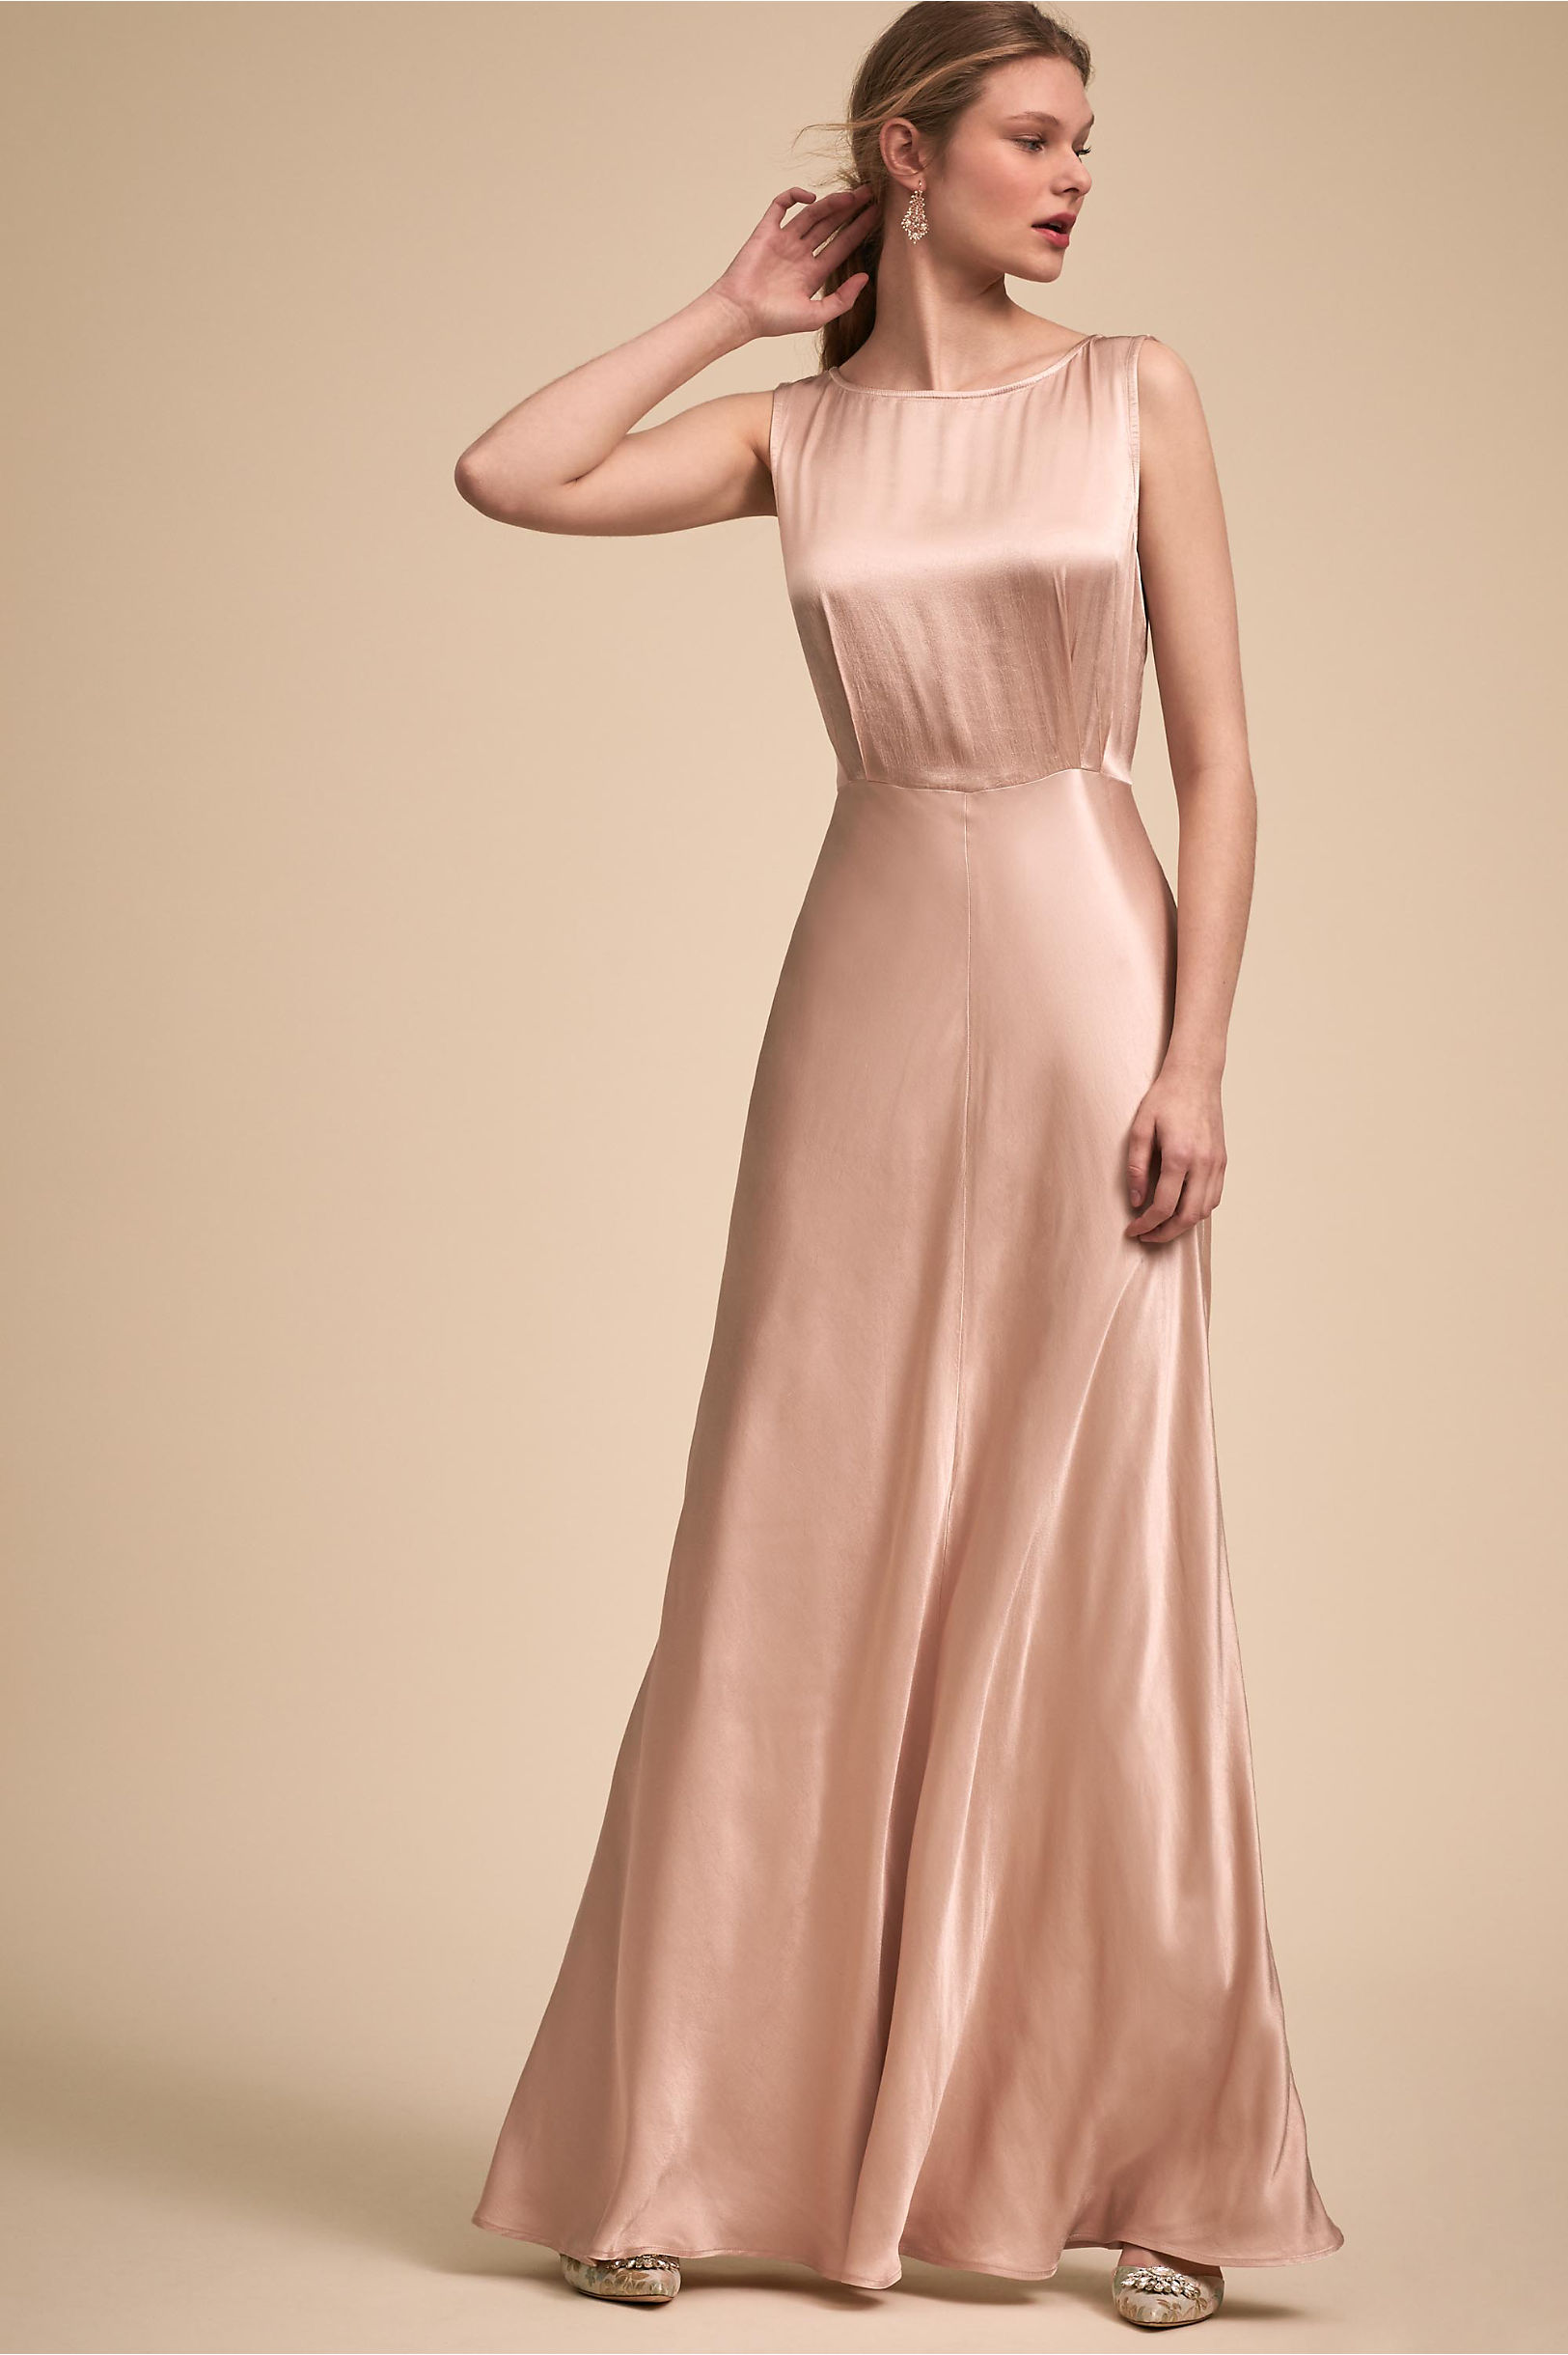 Vintage Evening Dresses and Formal Evening Gowns Ghost London Alexia Dress  AT vintagedancer.com